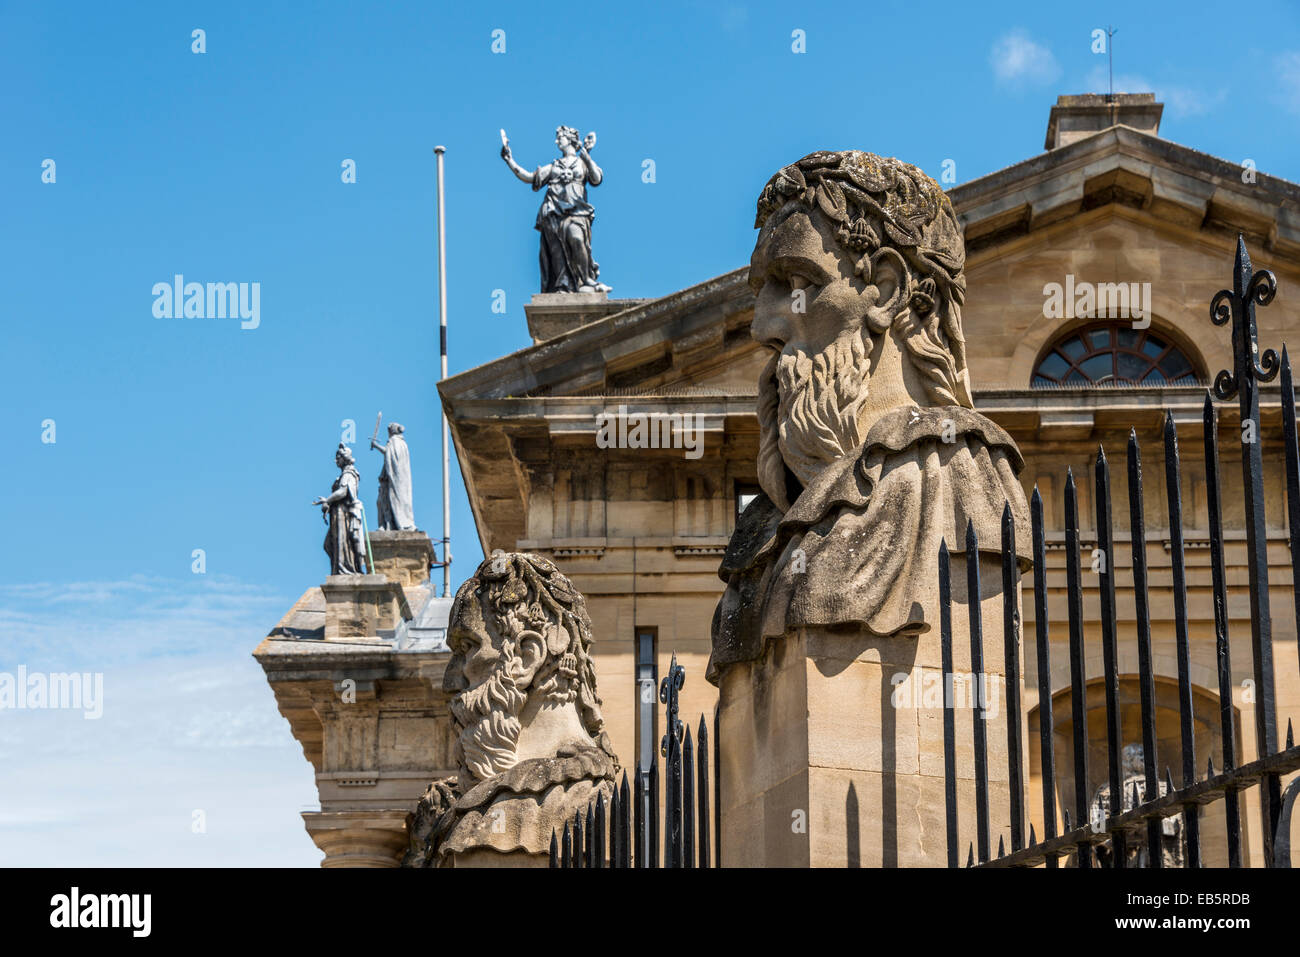 Grotesque decorative stone figure heads outside the Sheldonian Theatre, behind which is seen the Muses on the Clarendon Stock Photo